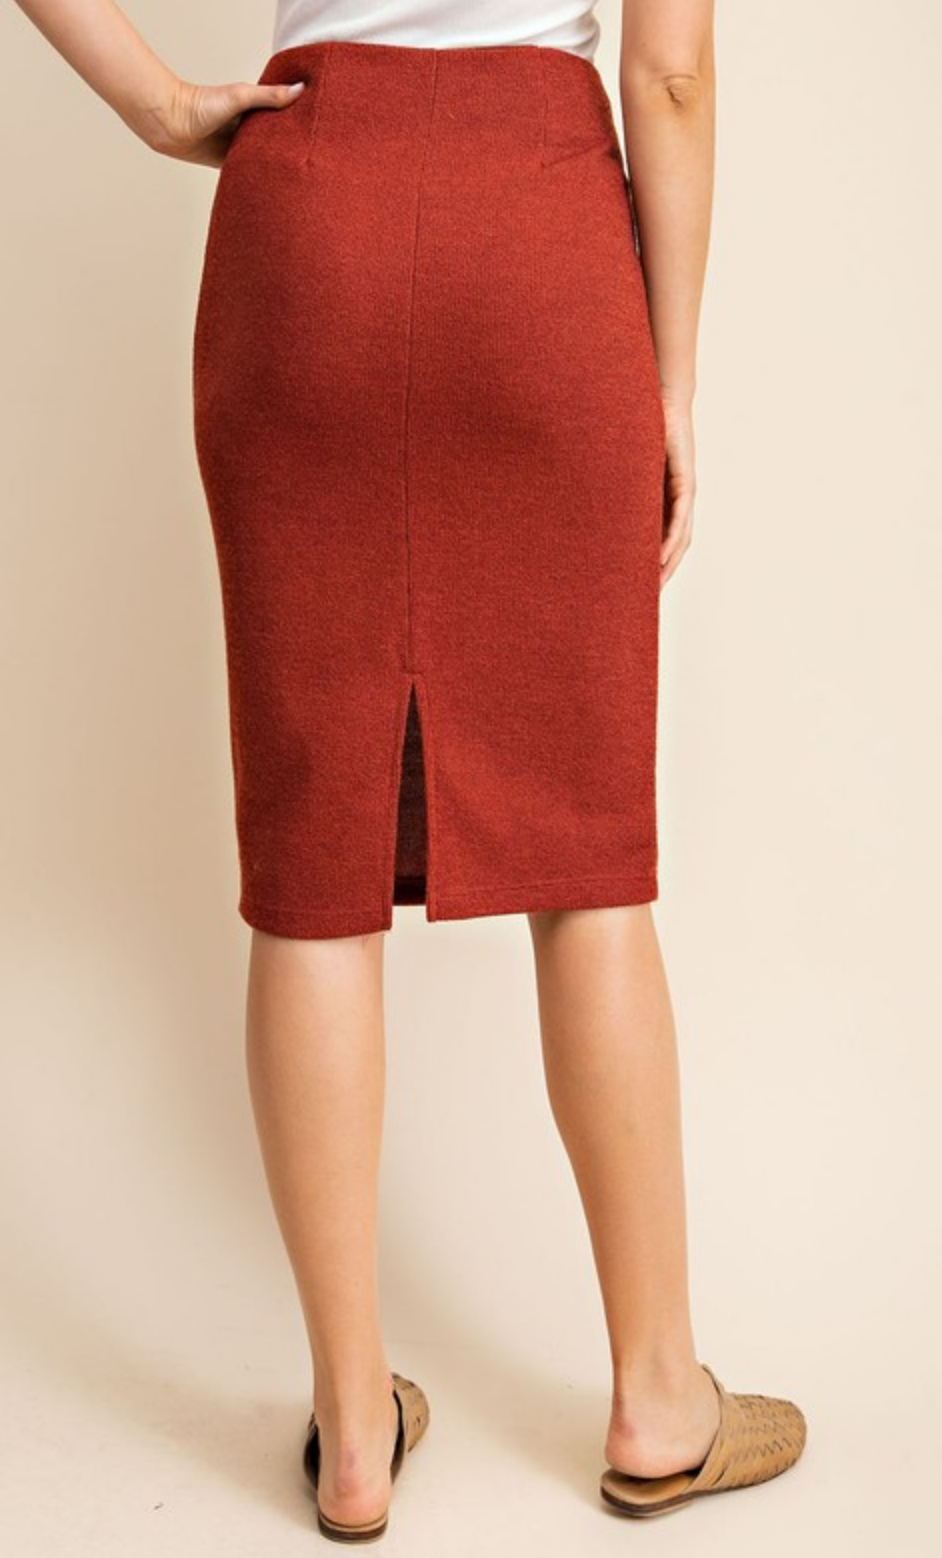 Gilli Lesson Plan Skirt